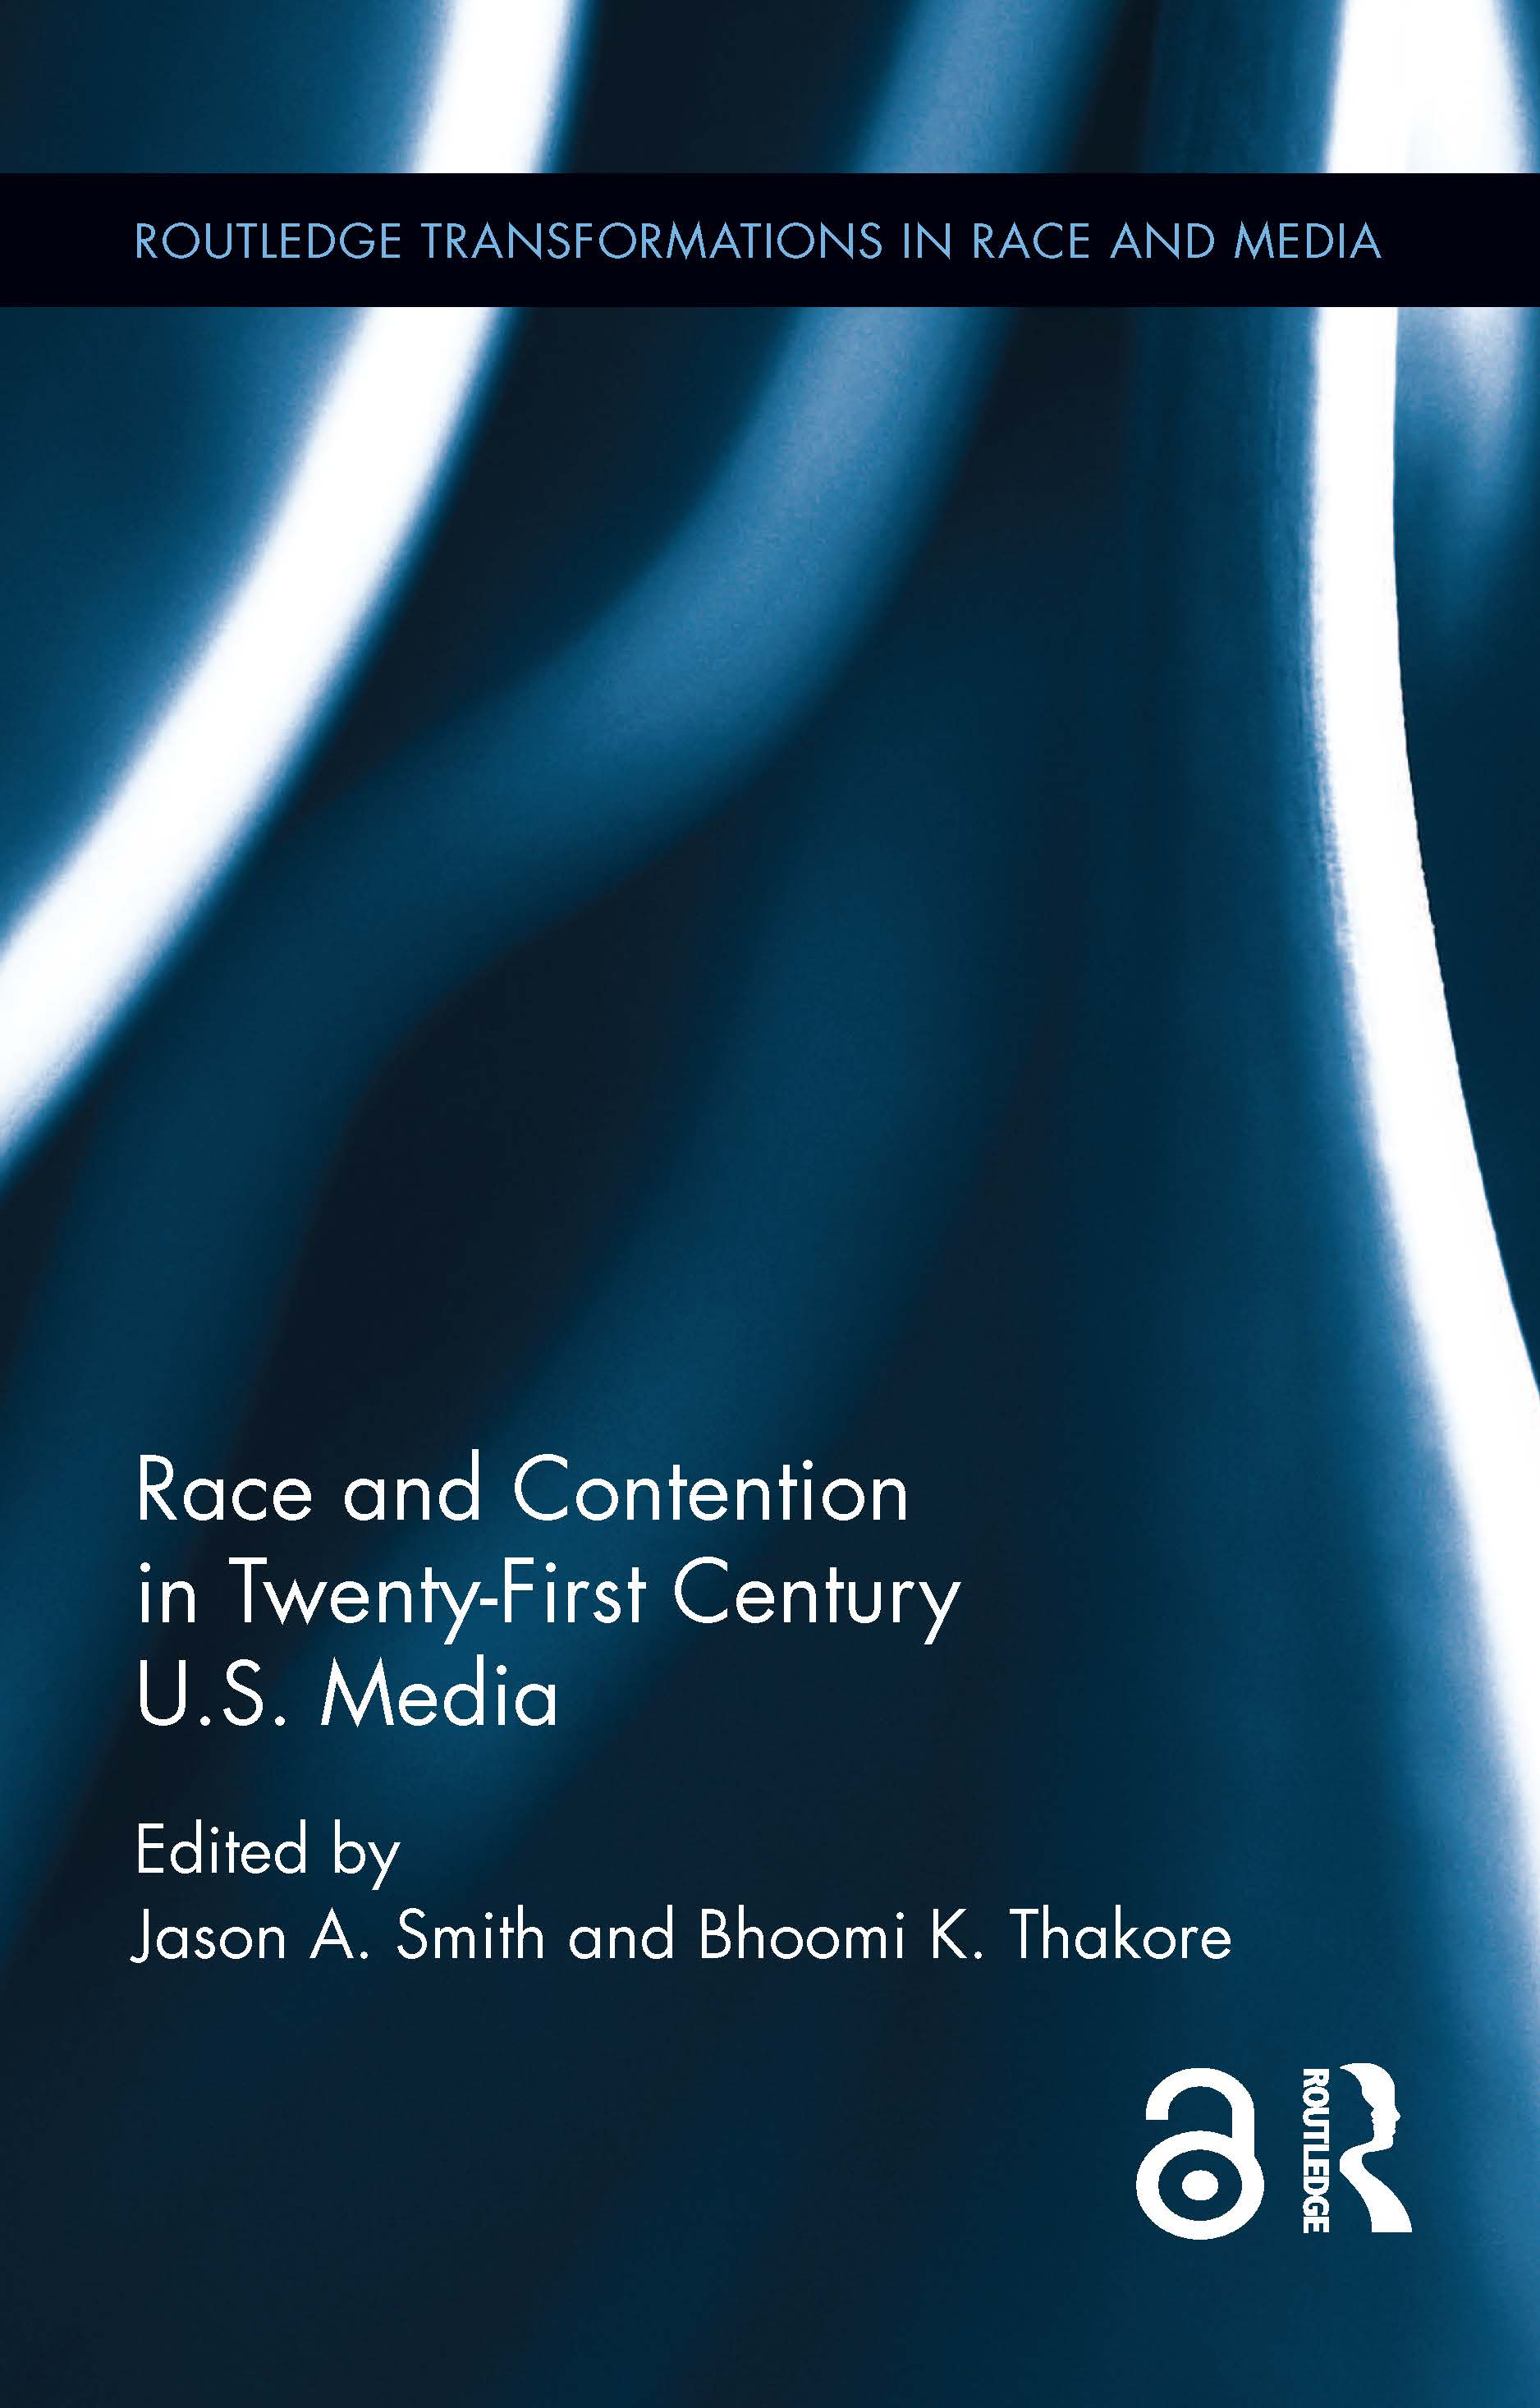 Race and Contention in Twenty-First Century U.S. Media book cover